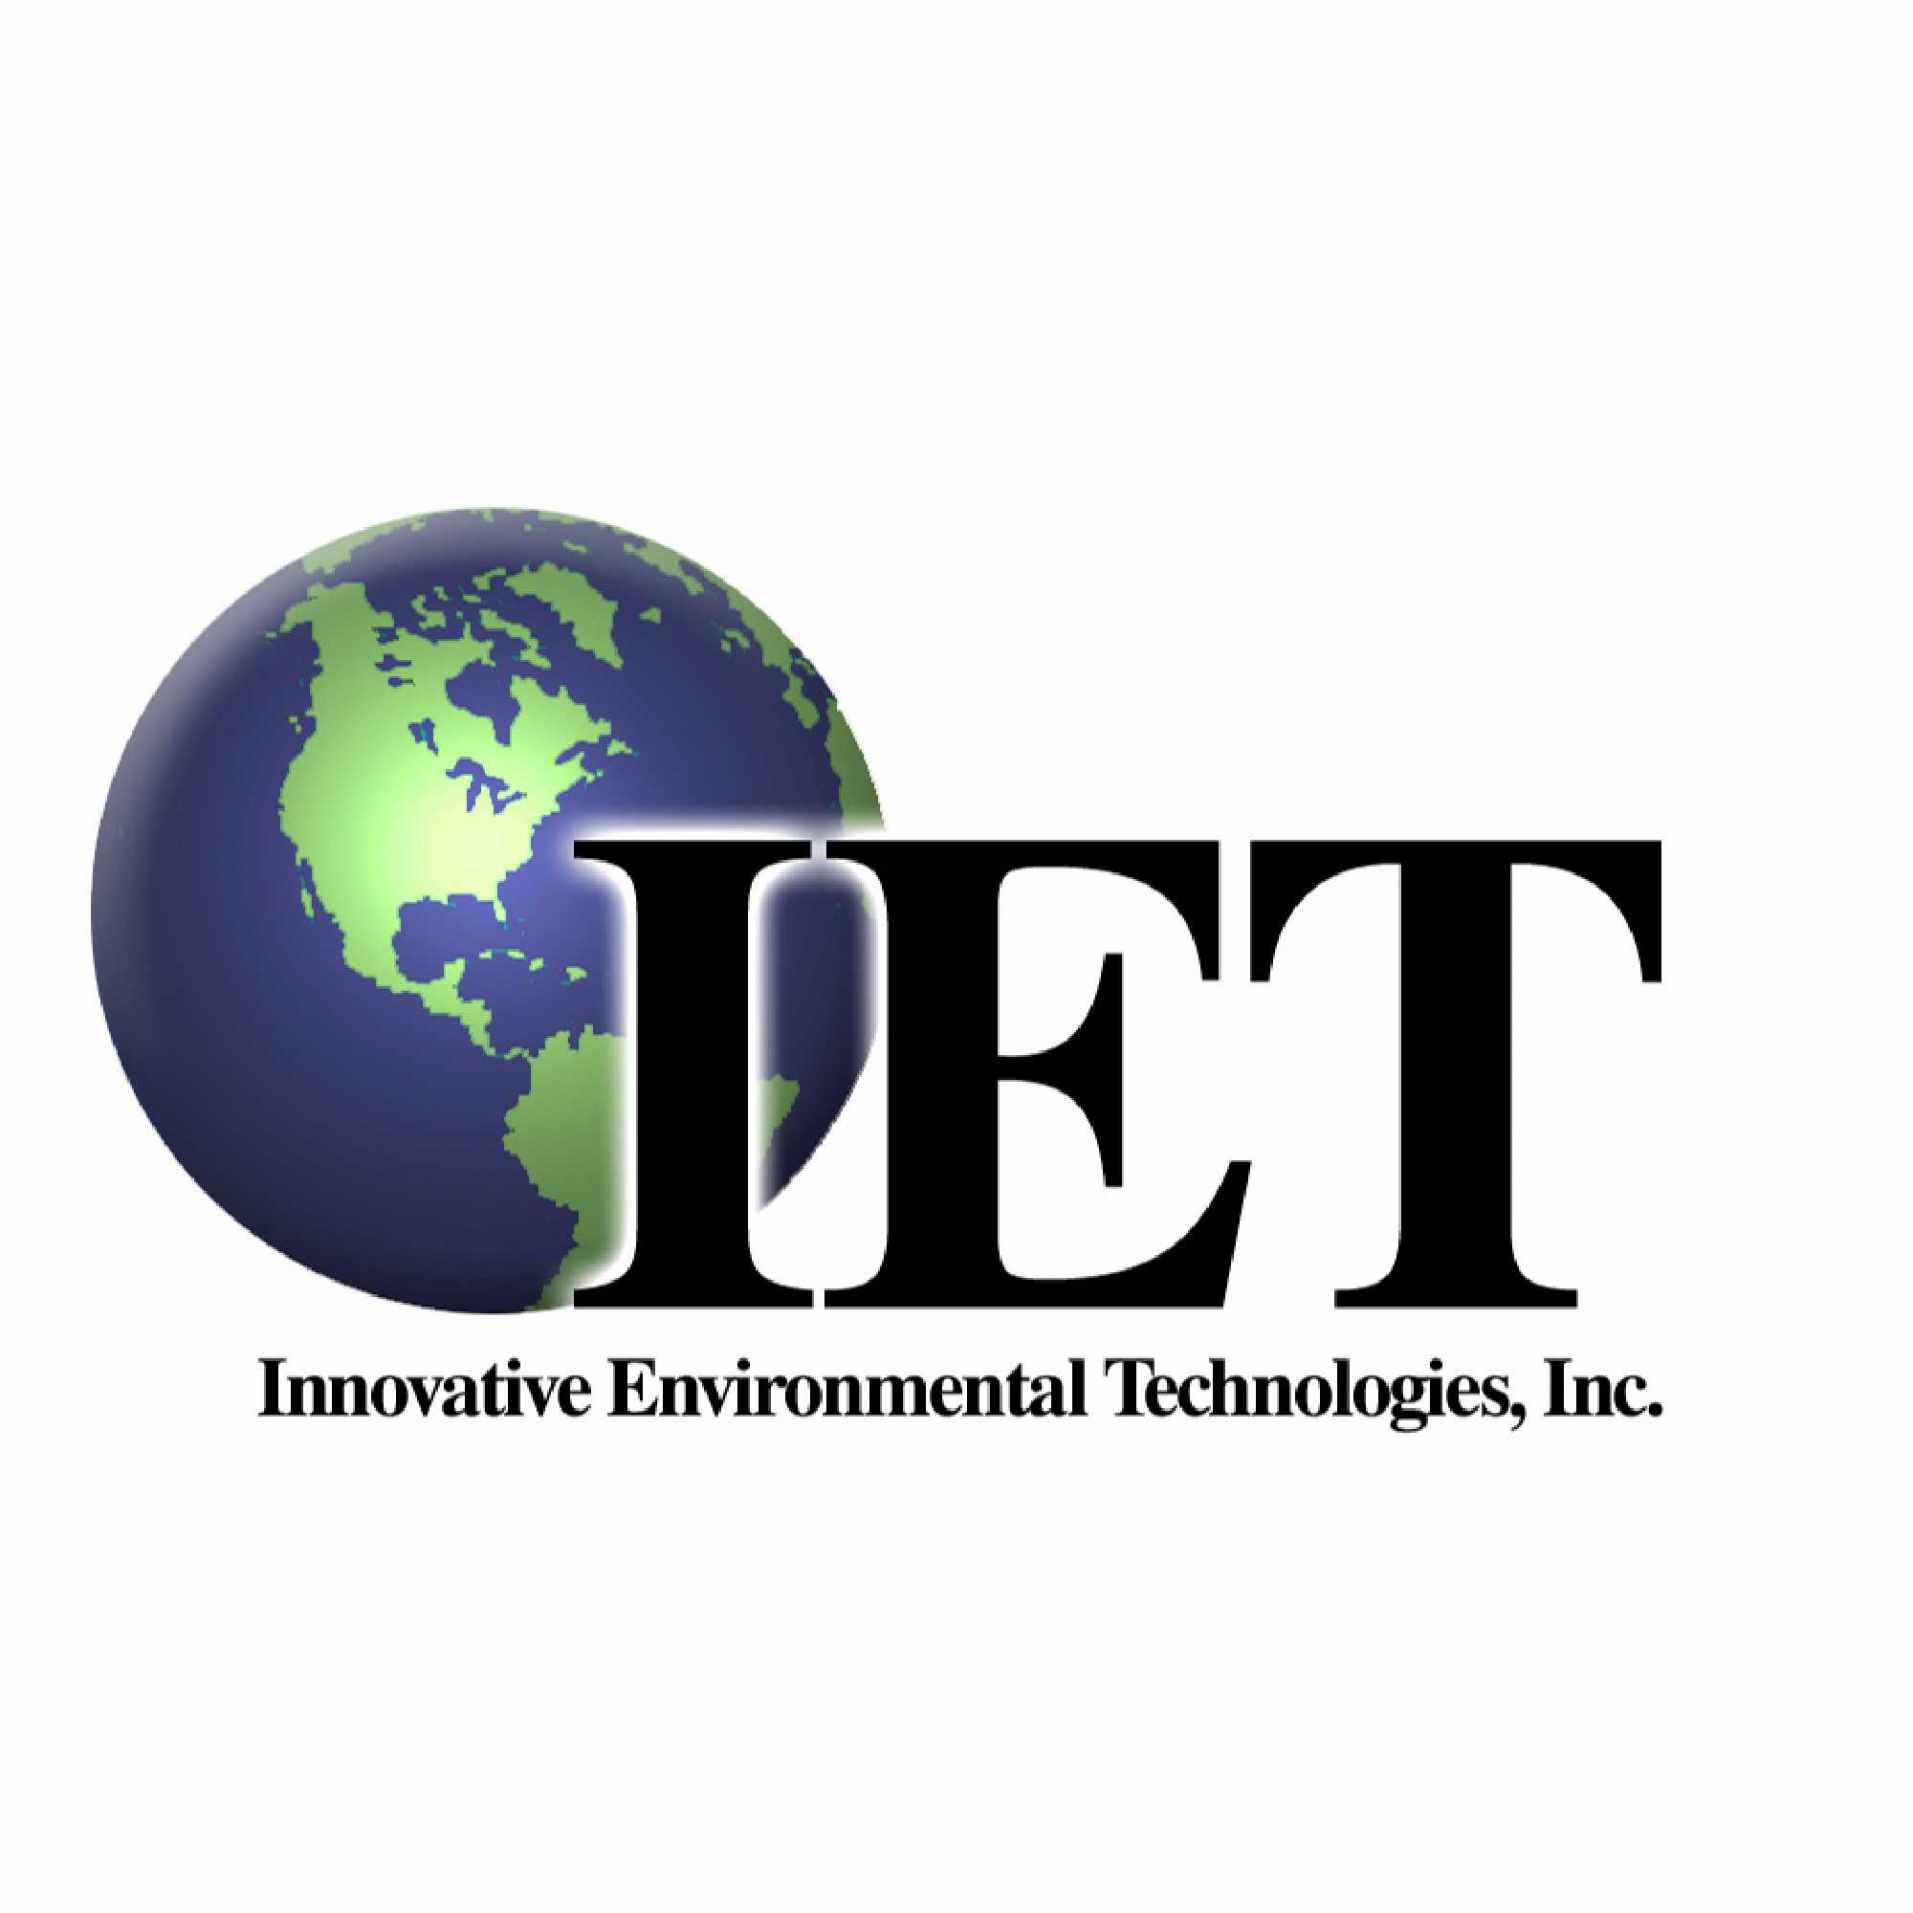 Innovative Environmental Technologies, Inc